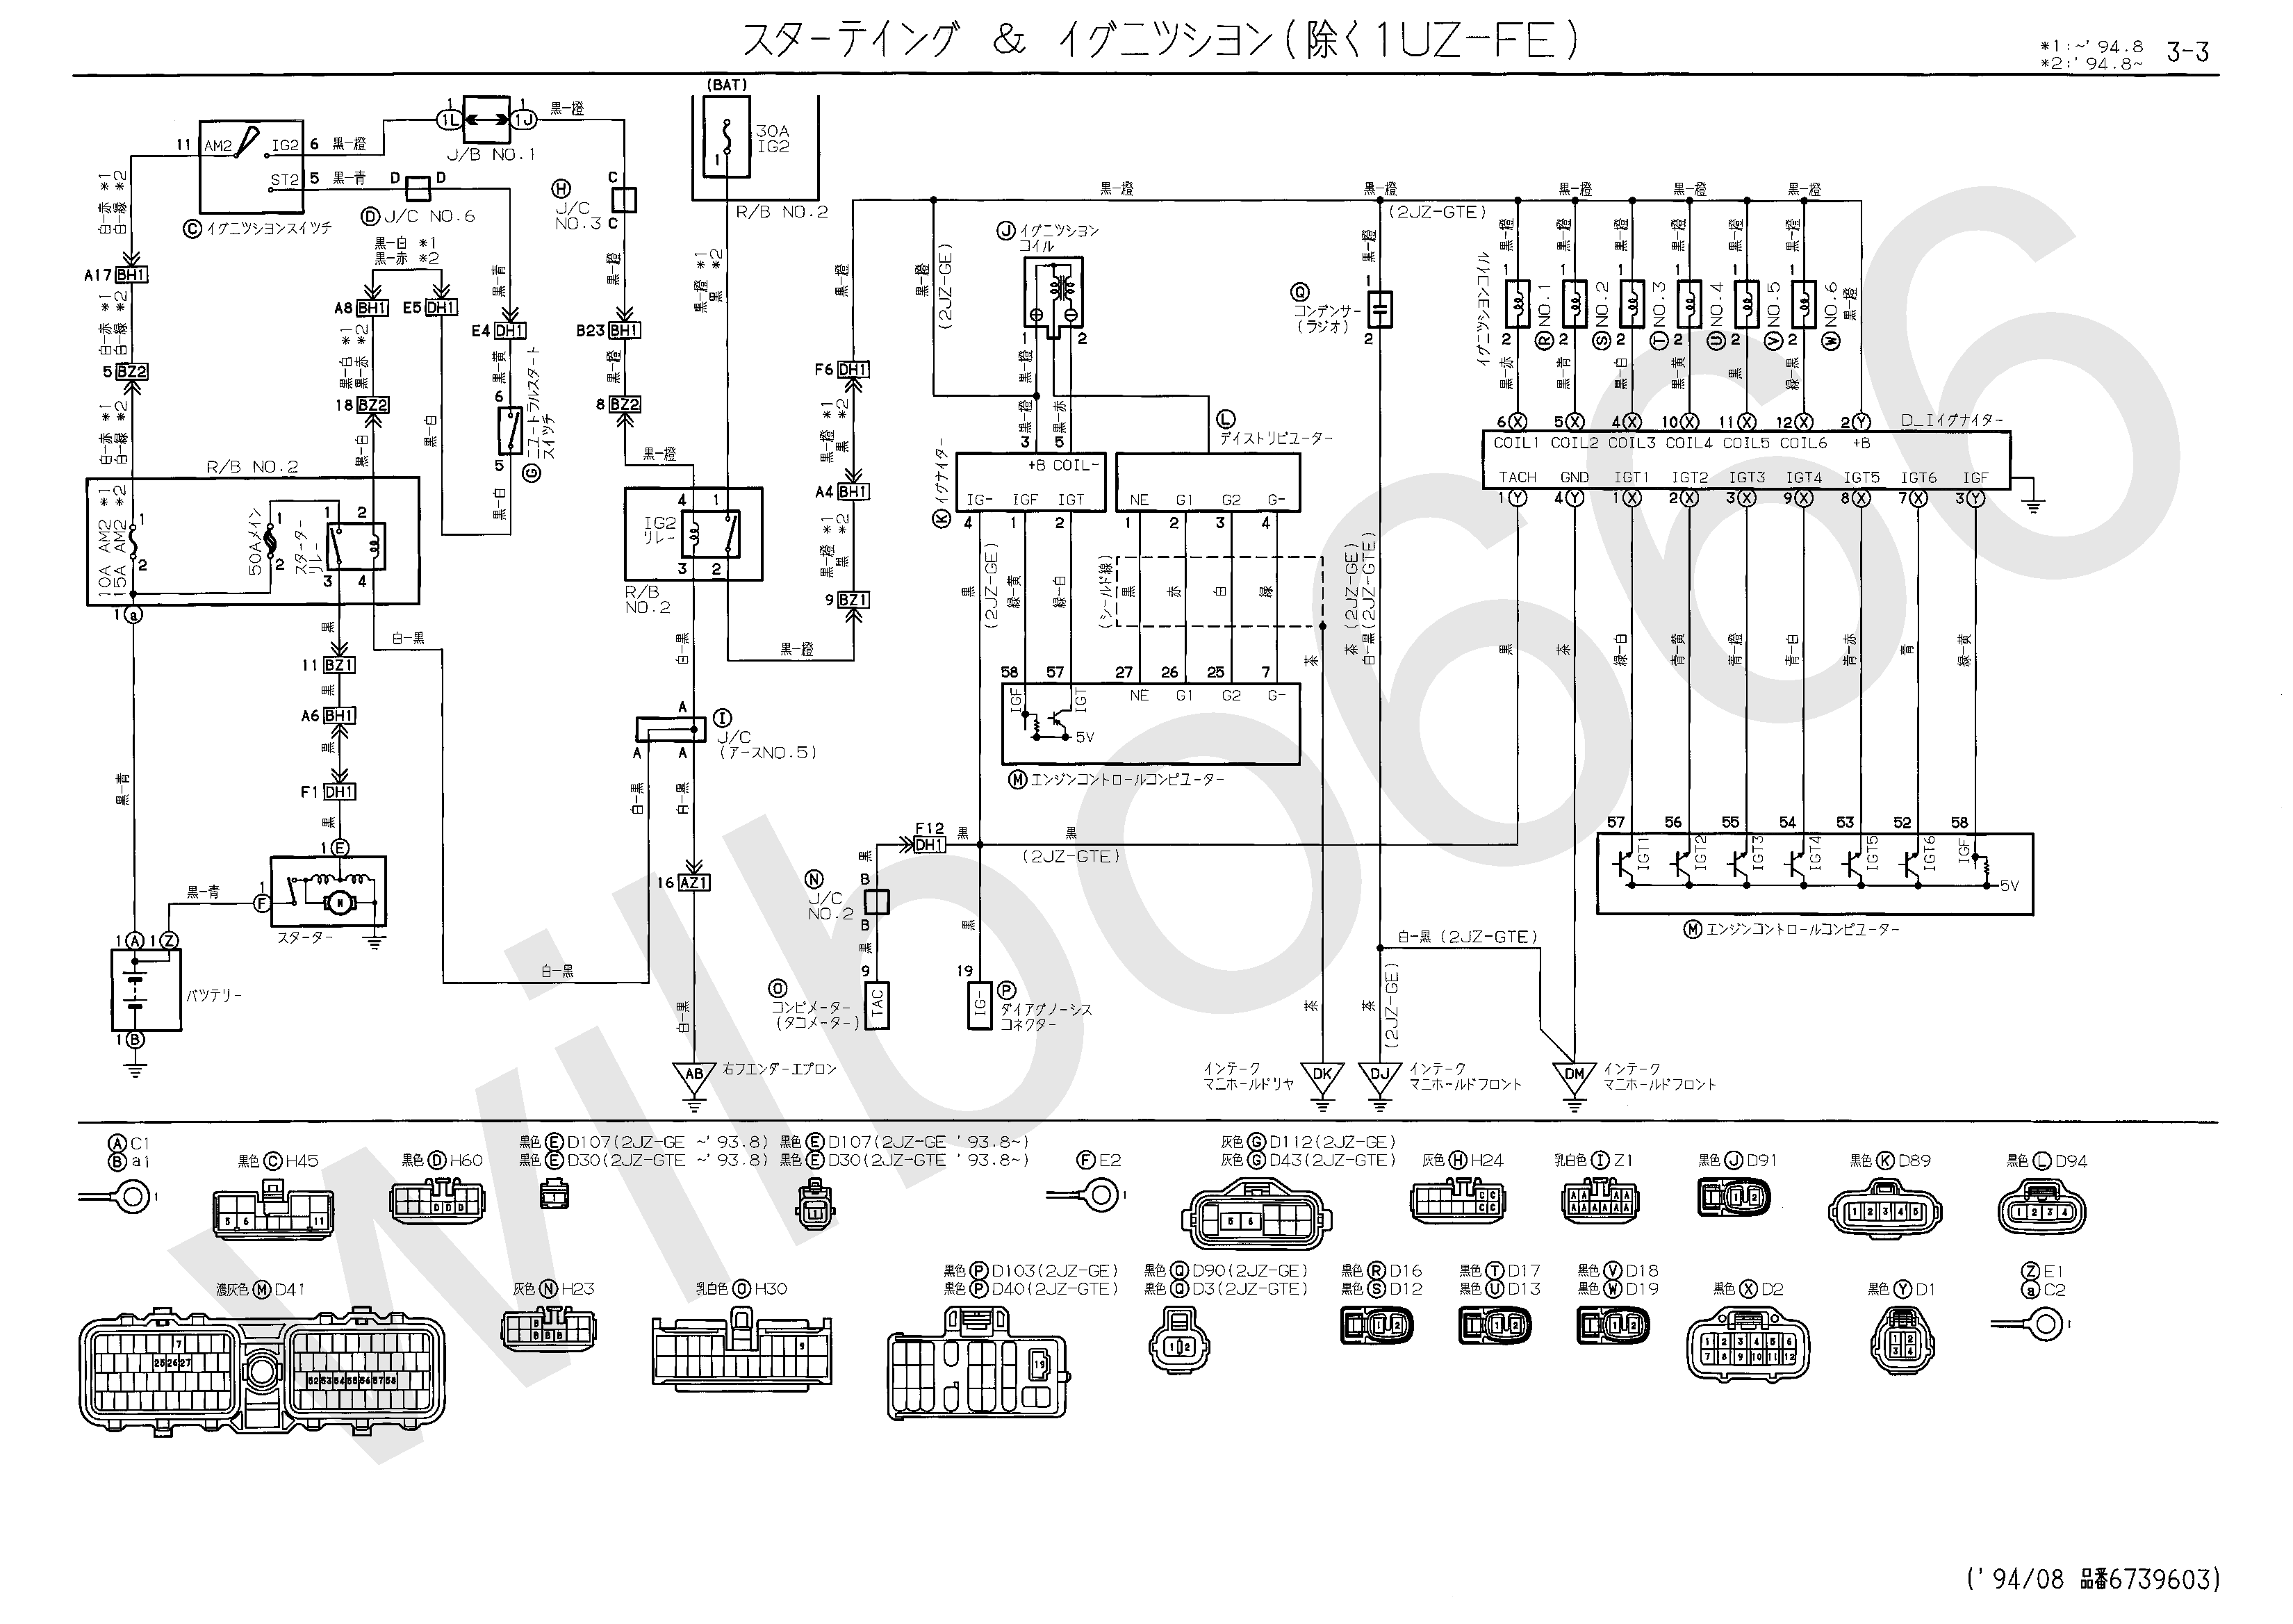 JZS14%23%2C UZS14%23 Electrical Wiring Diagram 6739604 3 3?resize\\\\\\\\\\\\\\\\\\\\\\\\\\\\\\\\\\\\\\\\\\\\\\\\\\\\\\\\\\\\\\\\\\\\\\\\\\\\\\\\\\\\\\\\\\\\\\\\\\\\\\\\\\\\\\\\\\\\\\\\\\\\\\\\\\\\\\\\\\\\\\\\\\\\\\\\\\\\\\\\\\\\\\\\\\\\\\\\\\\\\\\\\\\\\\\\\\\\\\\\\\\\\\\\\\\\\\\\\\\\\\\\\\\\\\\\\\\\\\\\\\\\\\\\\\\\\\\\\\\\\\\\\\\\\\\\\\\\\\\\\\\\\\\\\\\\\\\\\\\\\\\\\\\\\\\\\\\\\\\\\\\\\\\\\\\\\\\\\\\\\\\\\\\\\\\\\\\\\\\\\\\\\\\\\\\\\\\\\\\\\\\\\\\\\\\\\\\\\\\\\\\\\\\\\\\\\\\\\\\\\\\\\\\\\\\\\\\\\\\\\\\\\\\\\=665%2C471 rb26 wiring diagram gmc fuse box diagrams \u2022 wiring diagrams j ge ignitor wiring harness at crackthecode.co